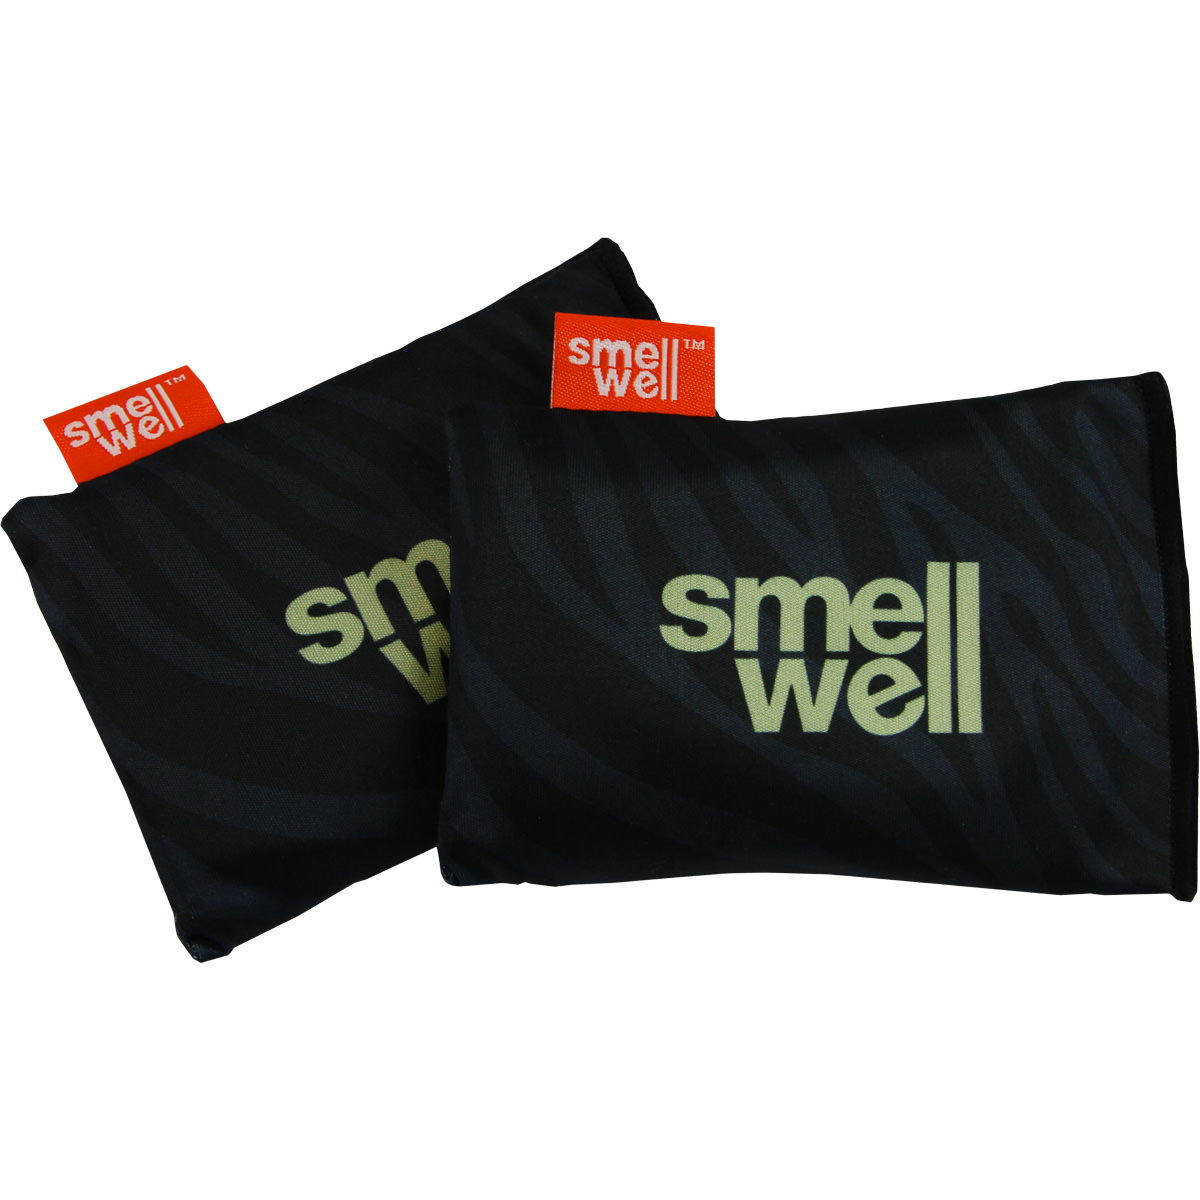 SmellWell Original Black Lugtfjerner